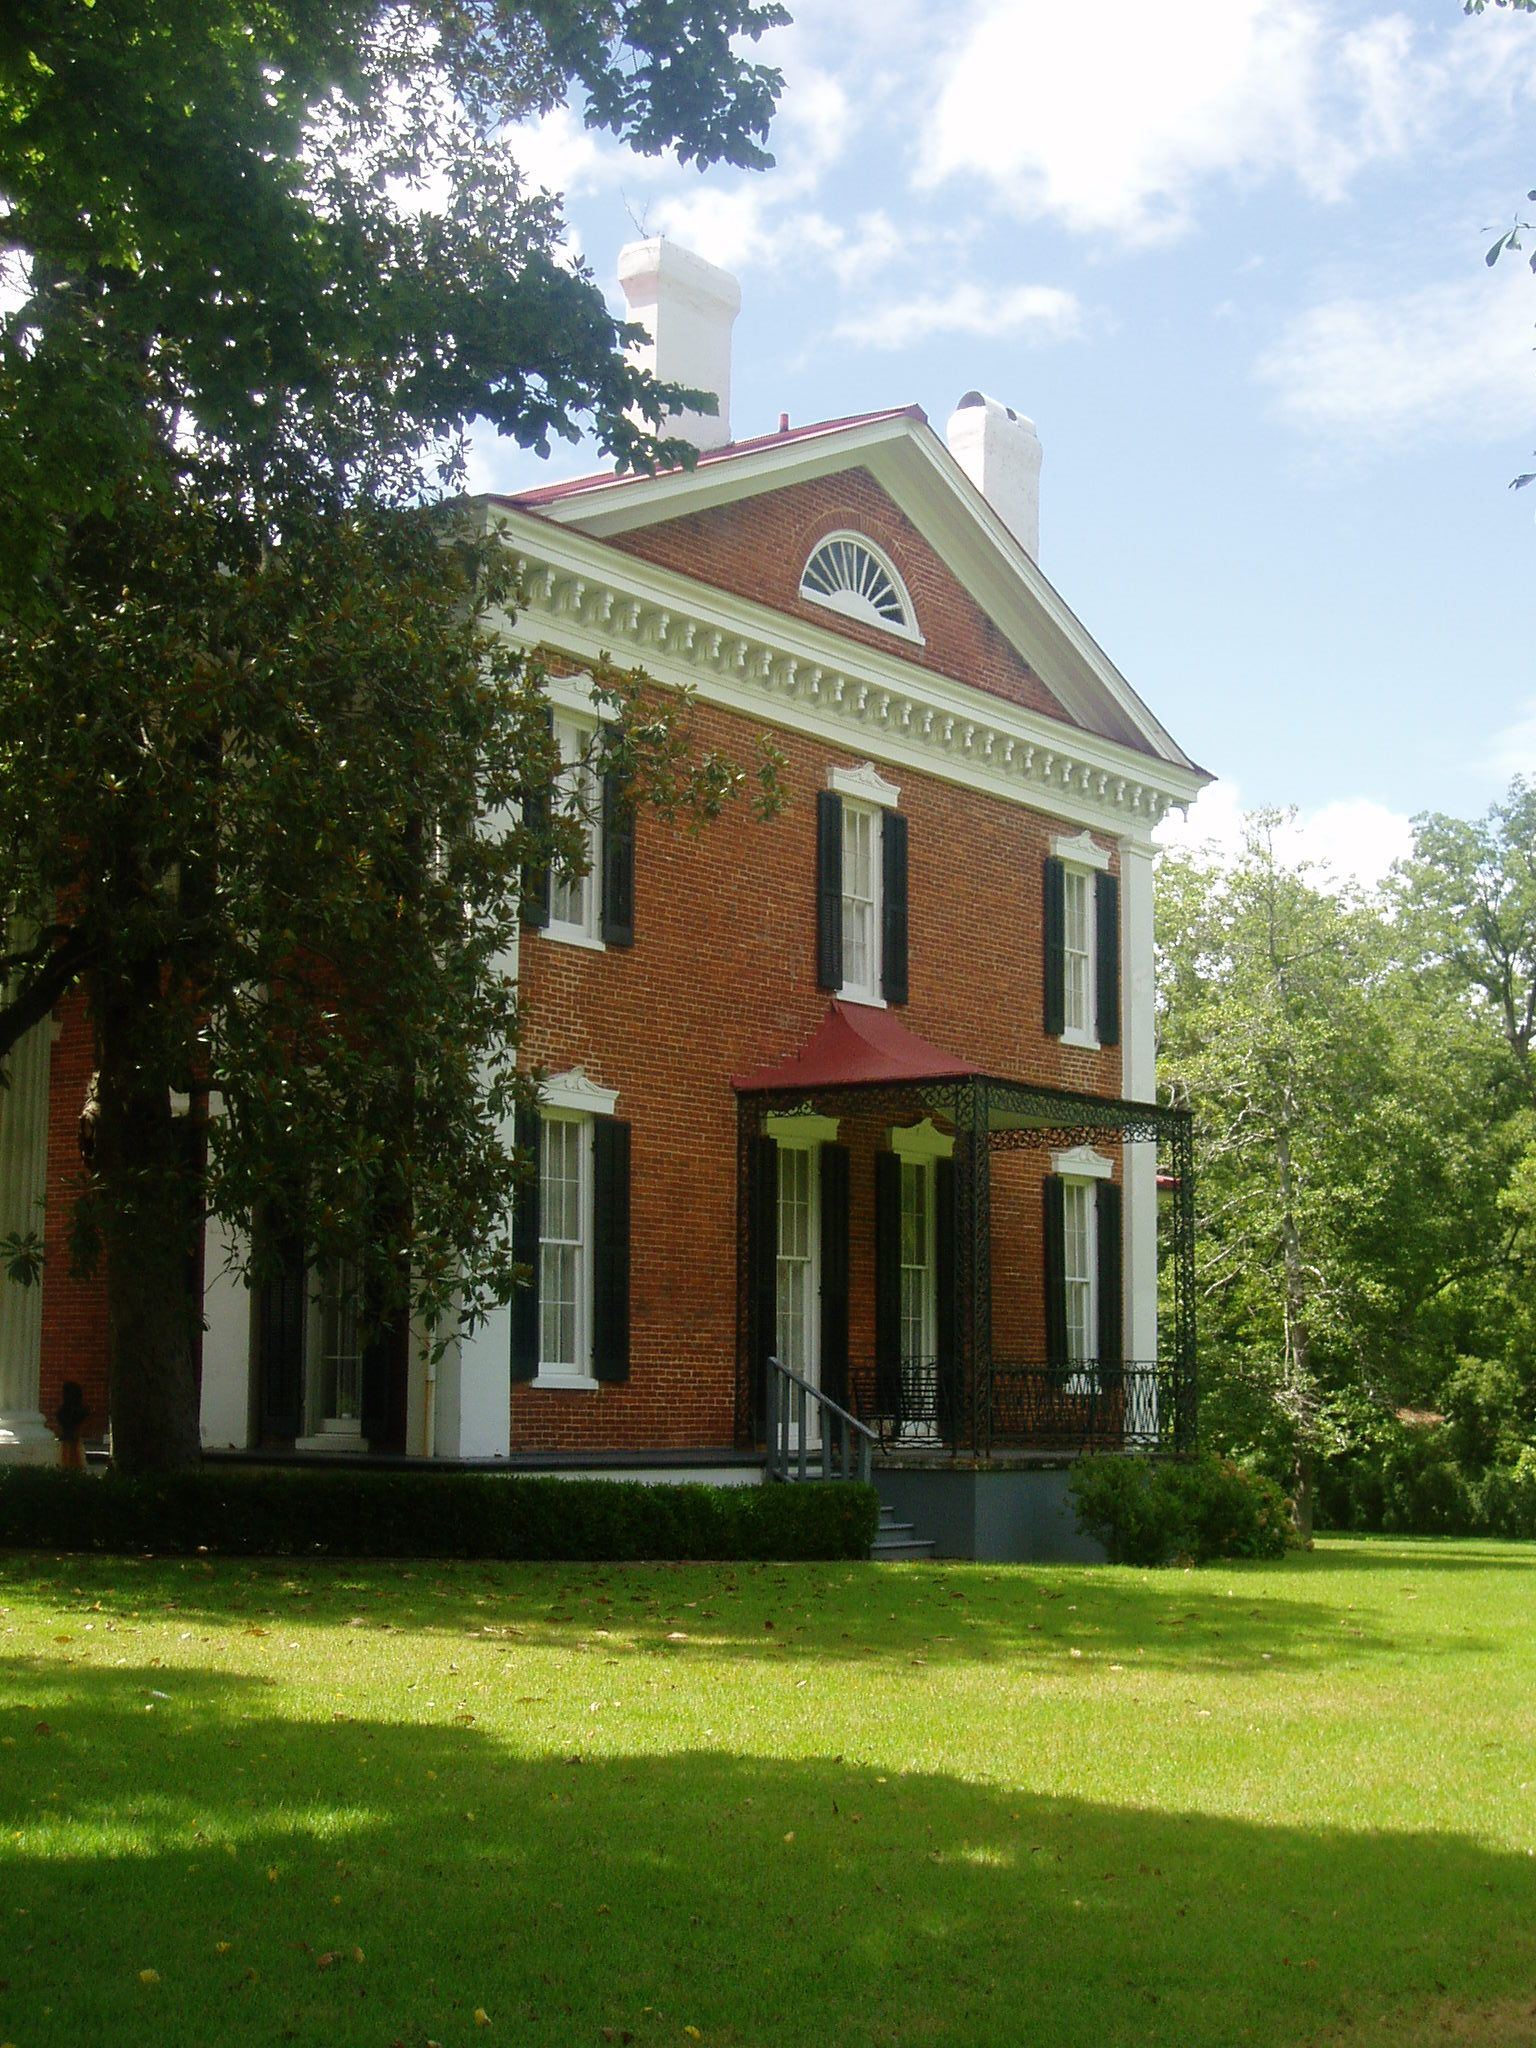 Holly springs mississippi house styles architecture